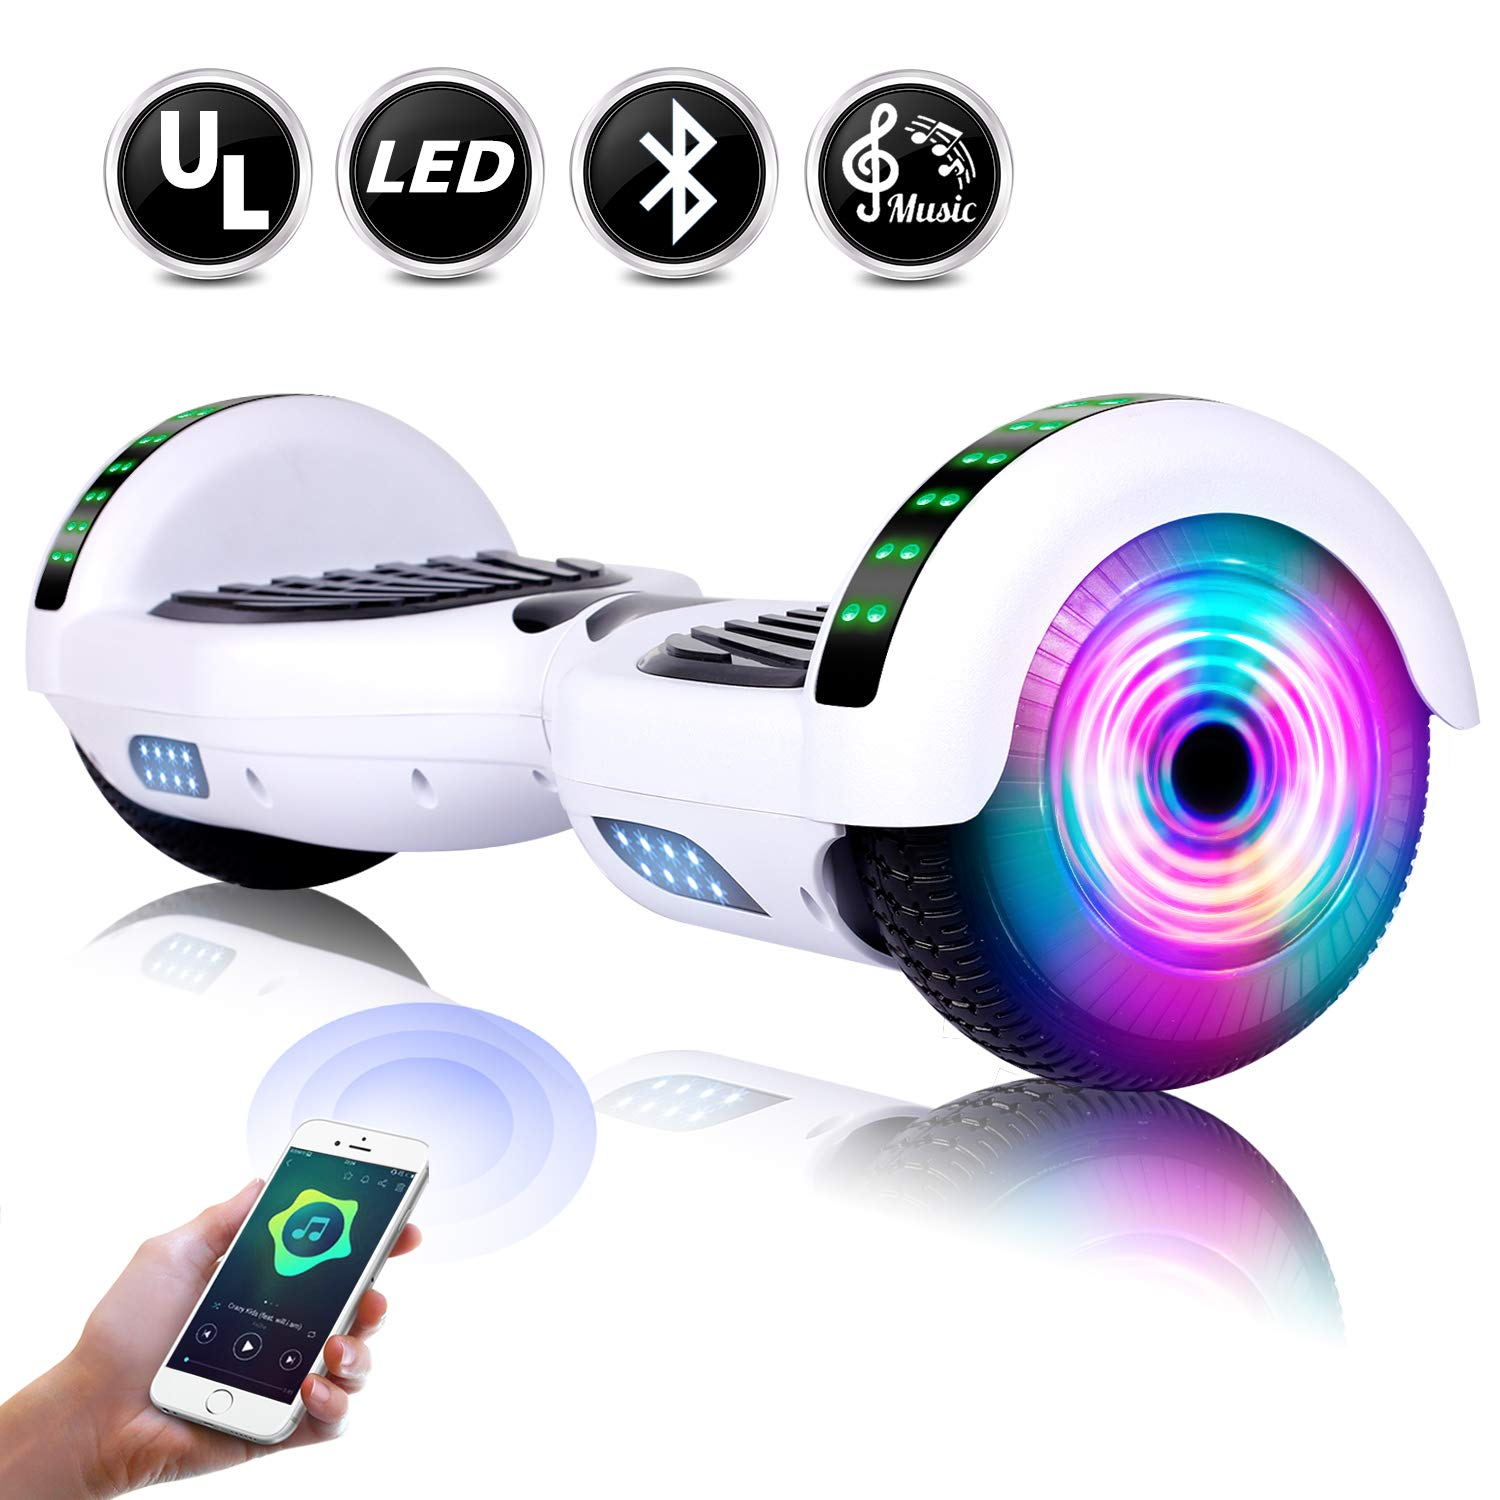 EPCTEK Hoverboard – UL2272 Self Balancing Hover Board w Bluetooth Speakers, LED Light